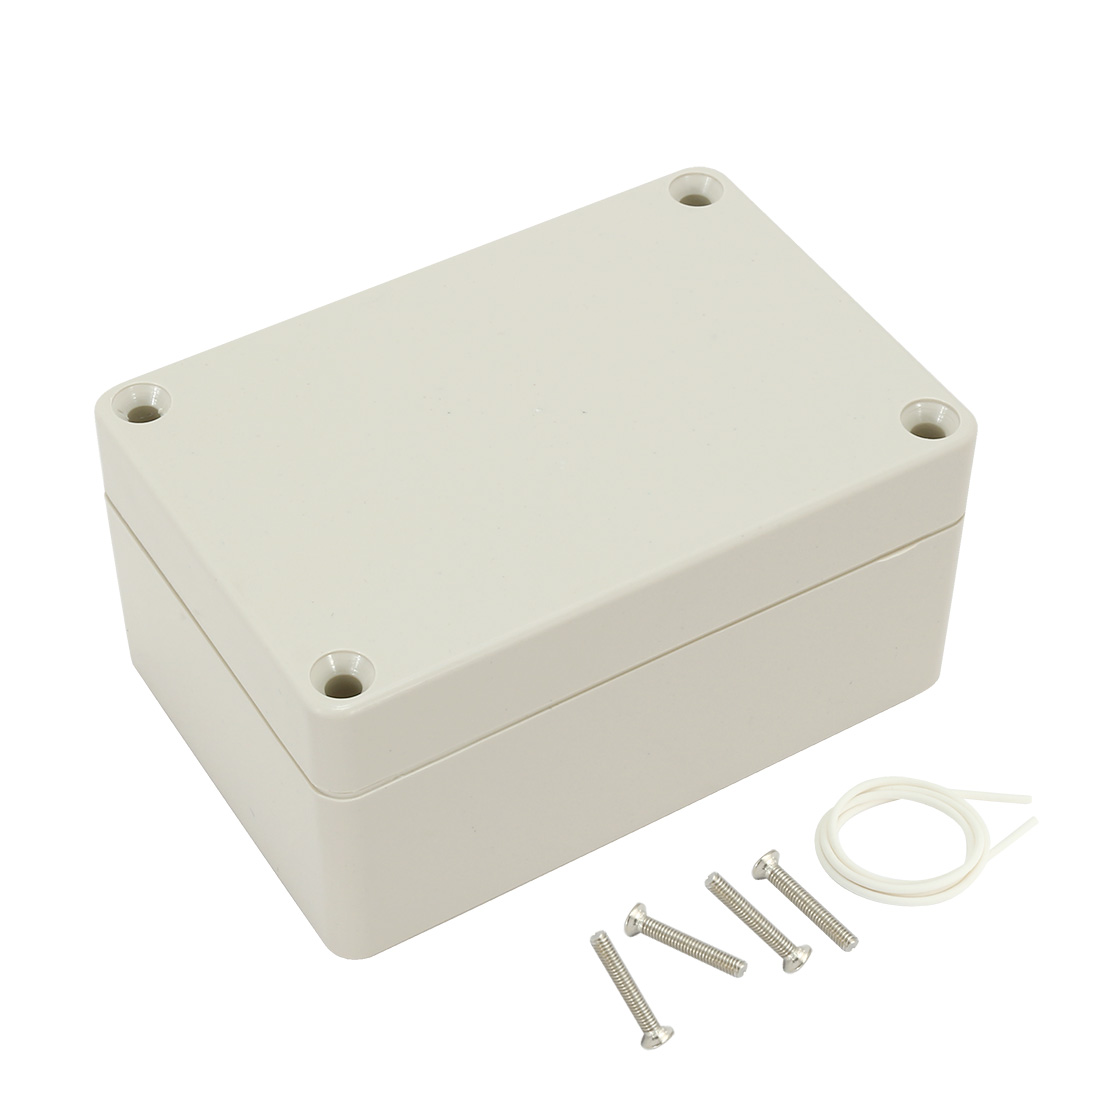 "3.9""x2.7""x2"" ABS Junction Box Universal Electric Project Enclosure"